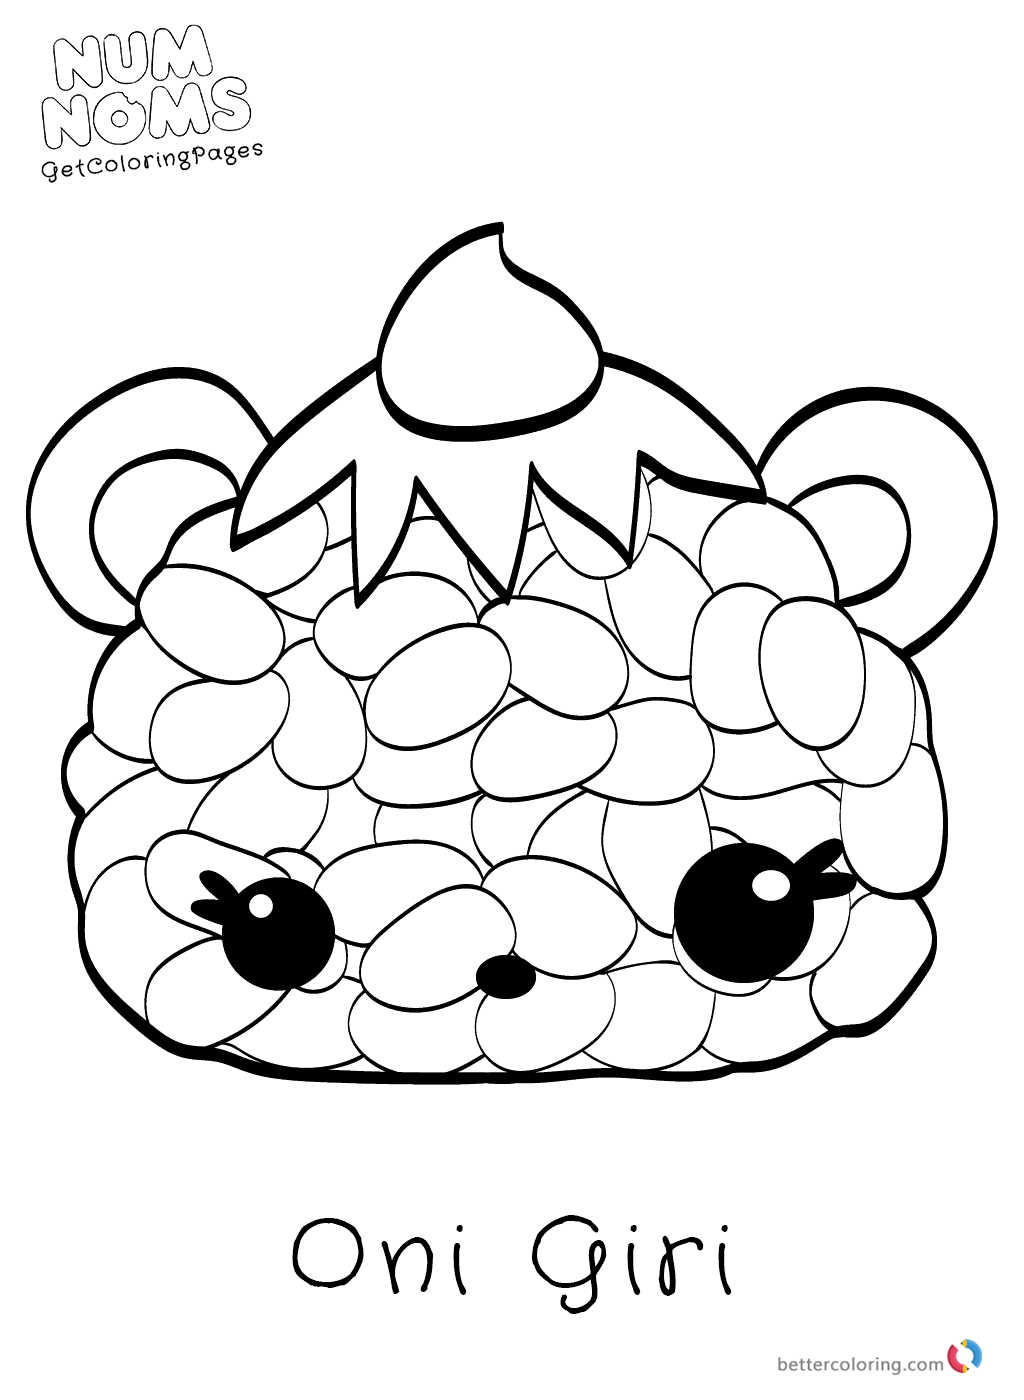 Free Num Noms Coloring Pages Free Printable Coloring Pages